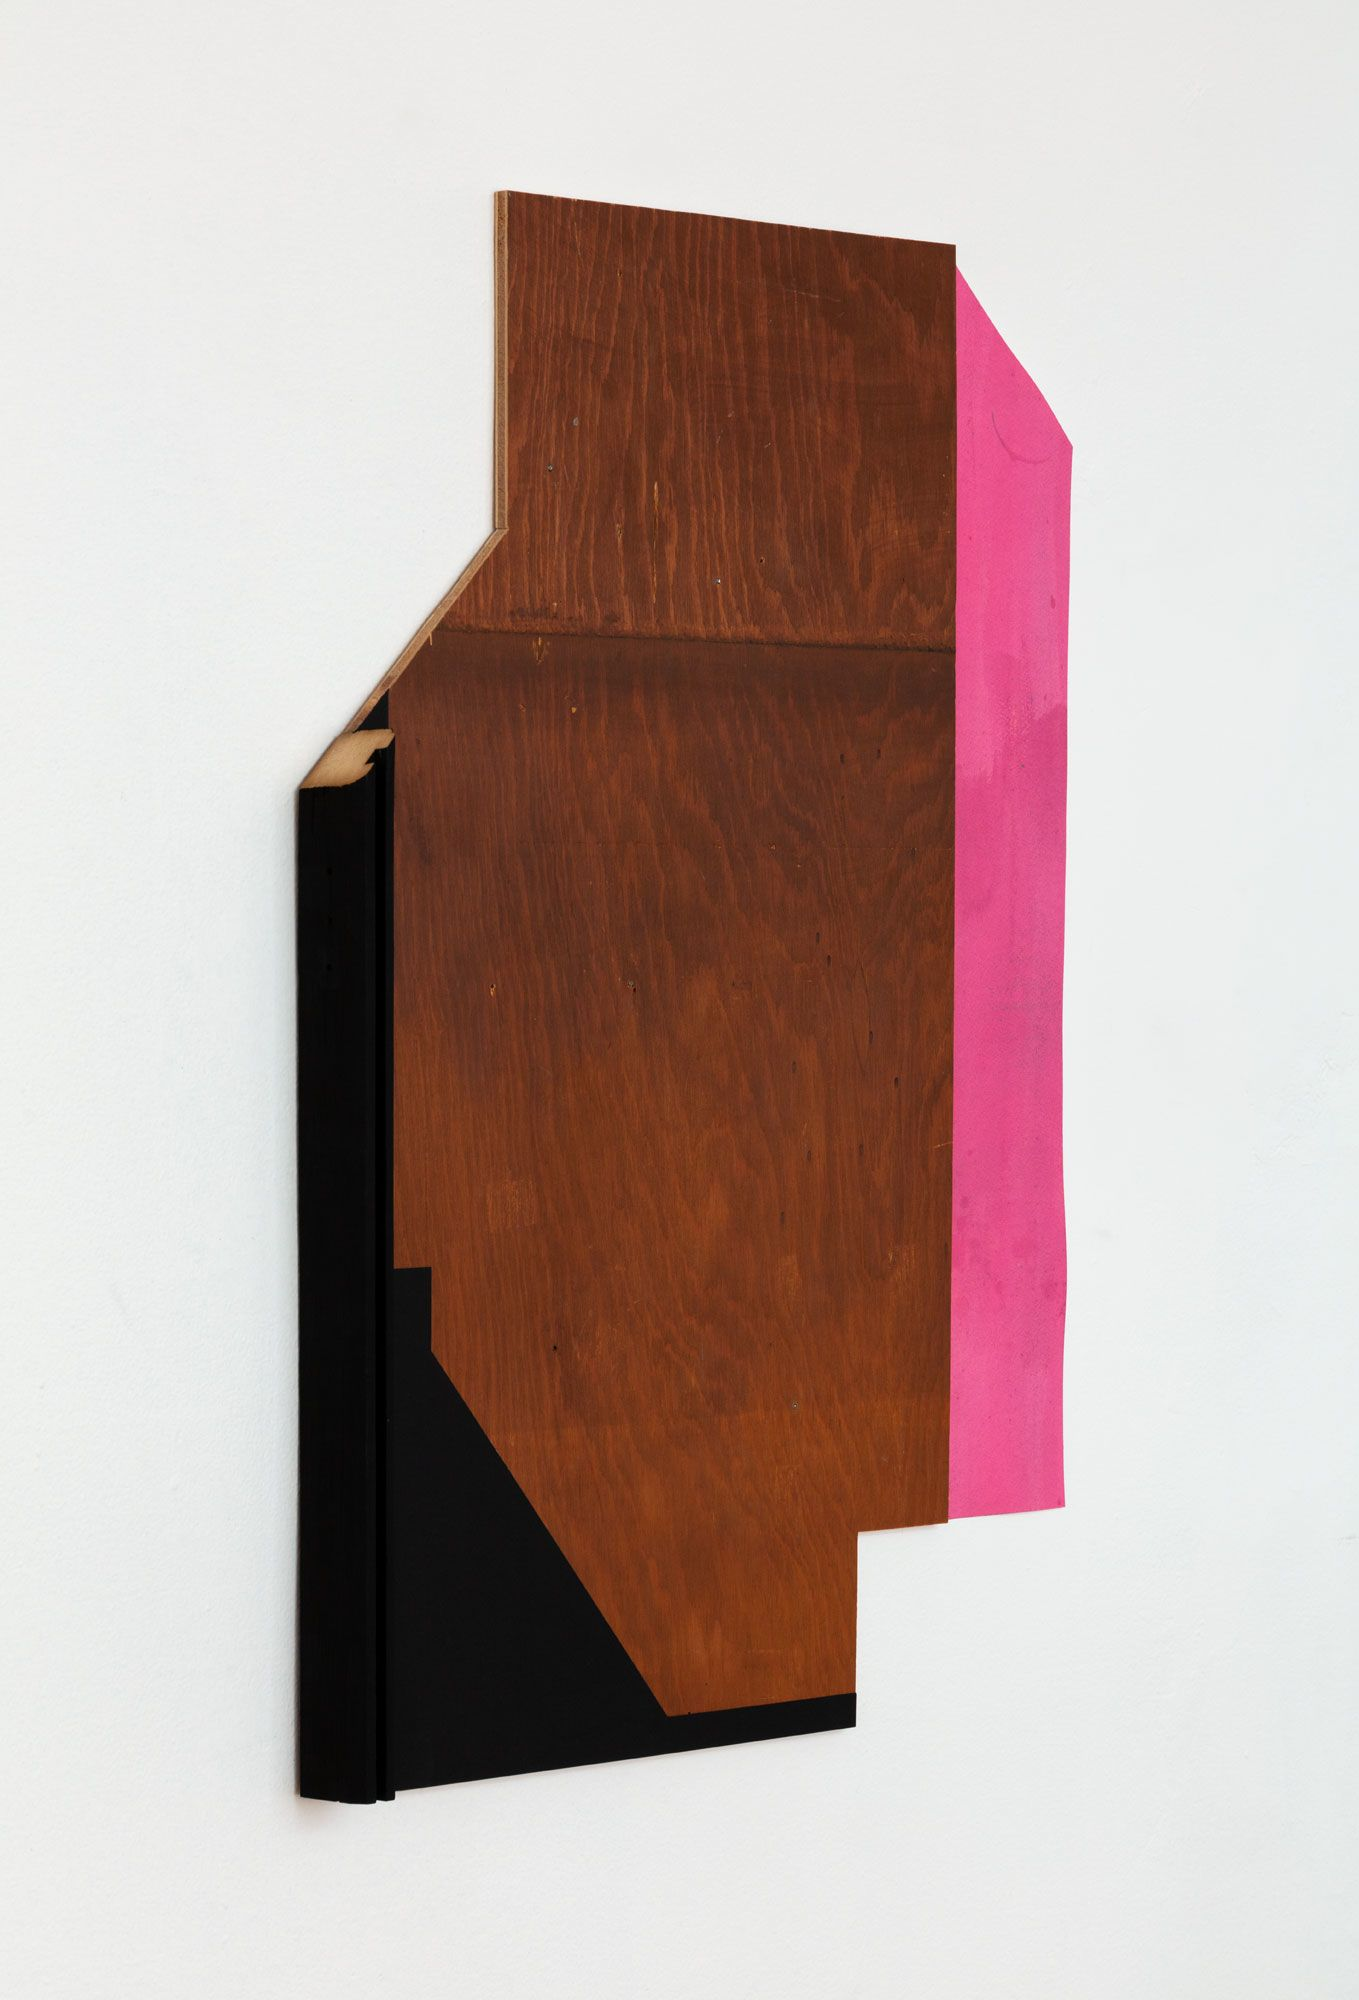 Untitled (Black wood edge, wood stained section, pink paper drop shadow)